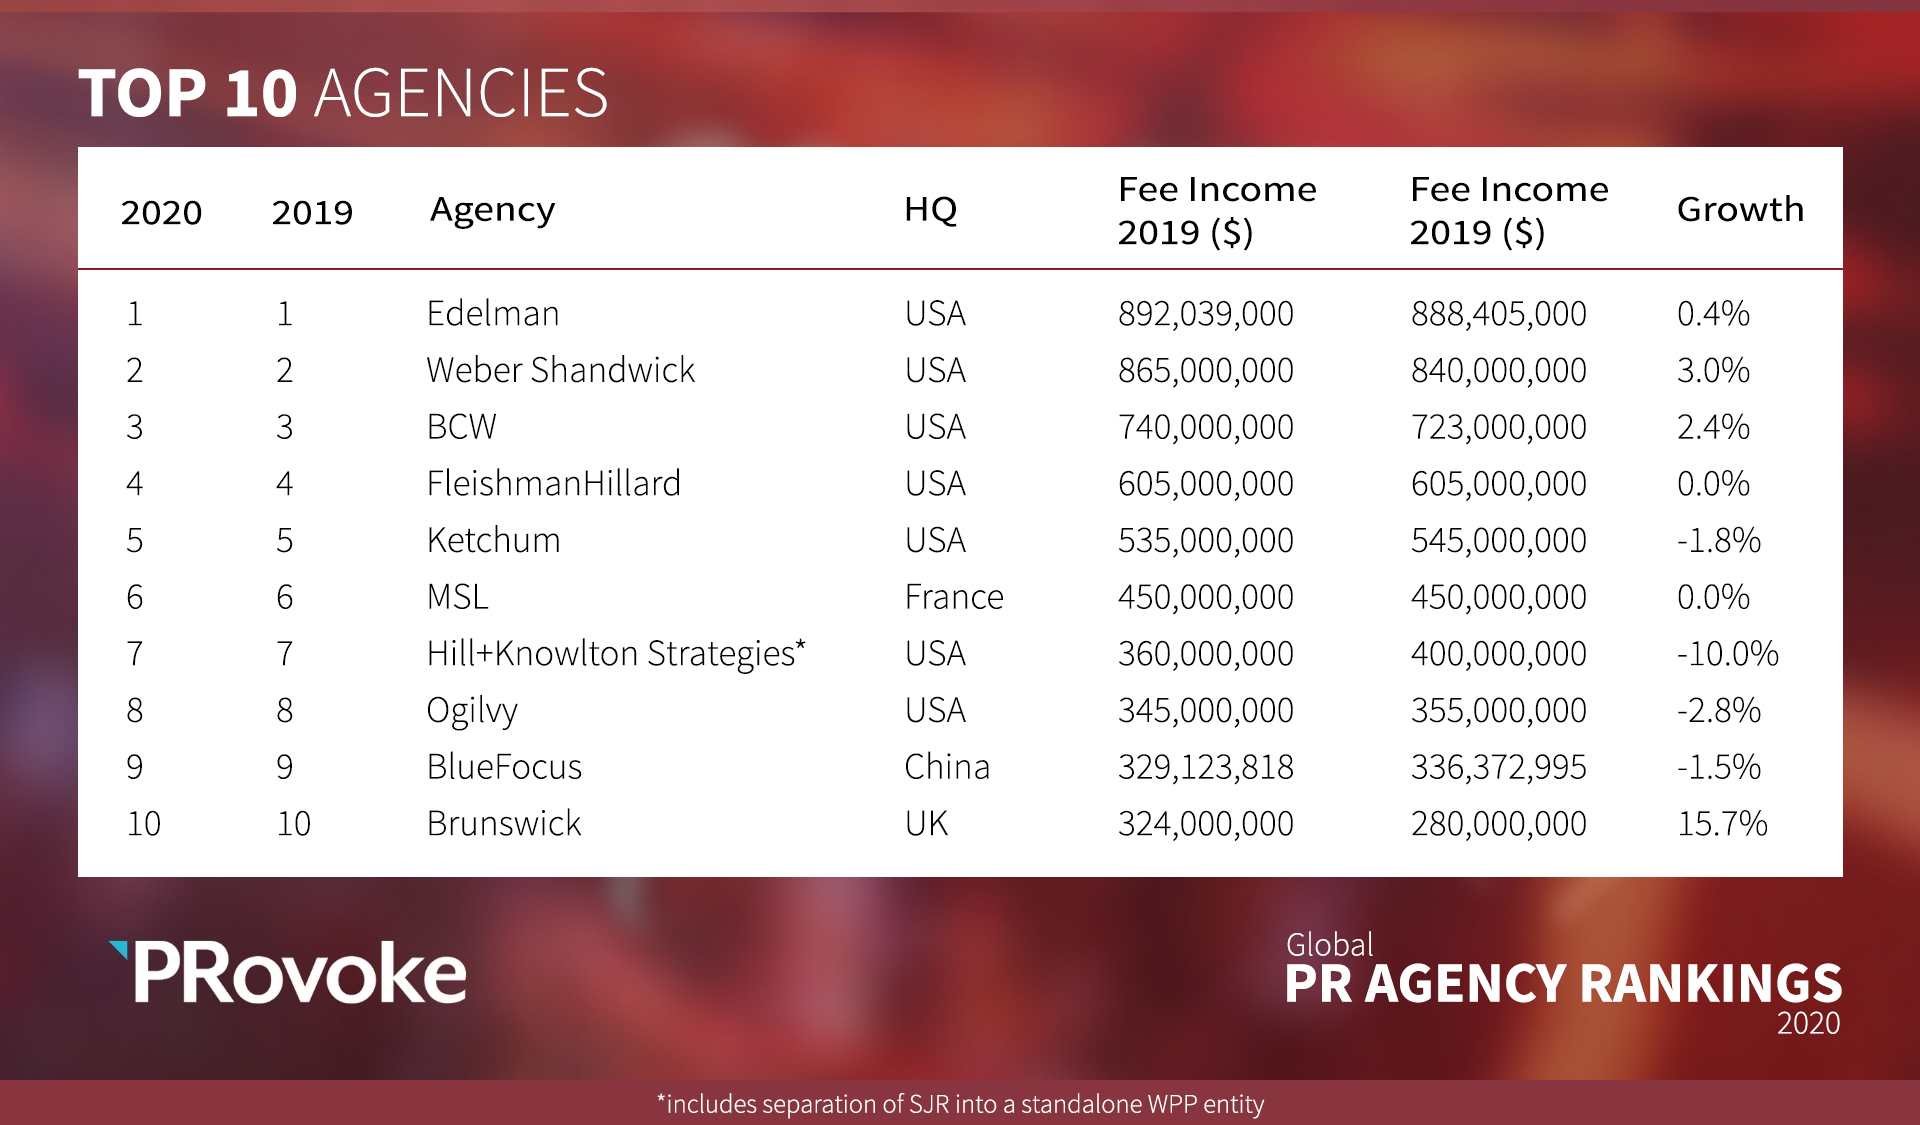 2020 Global PR Agency Rankings: Top 10